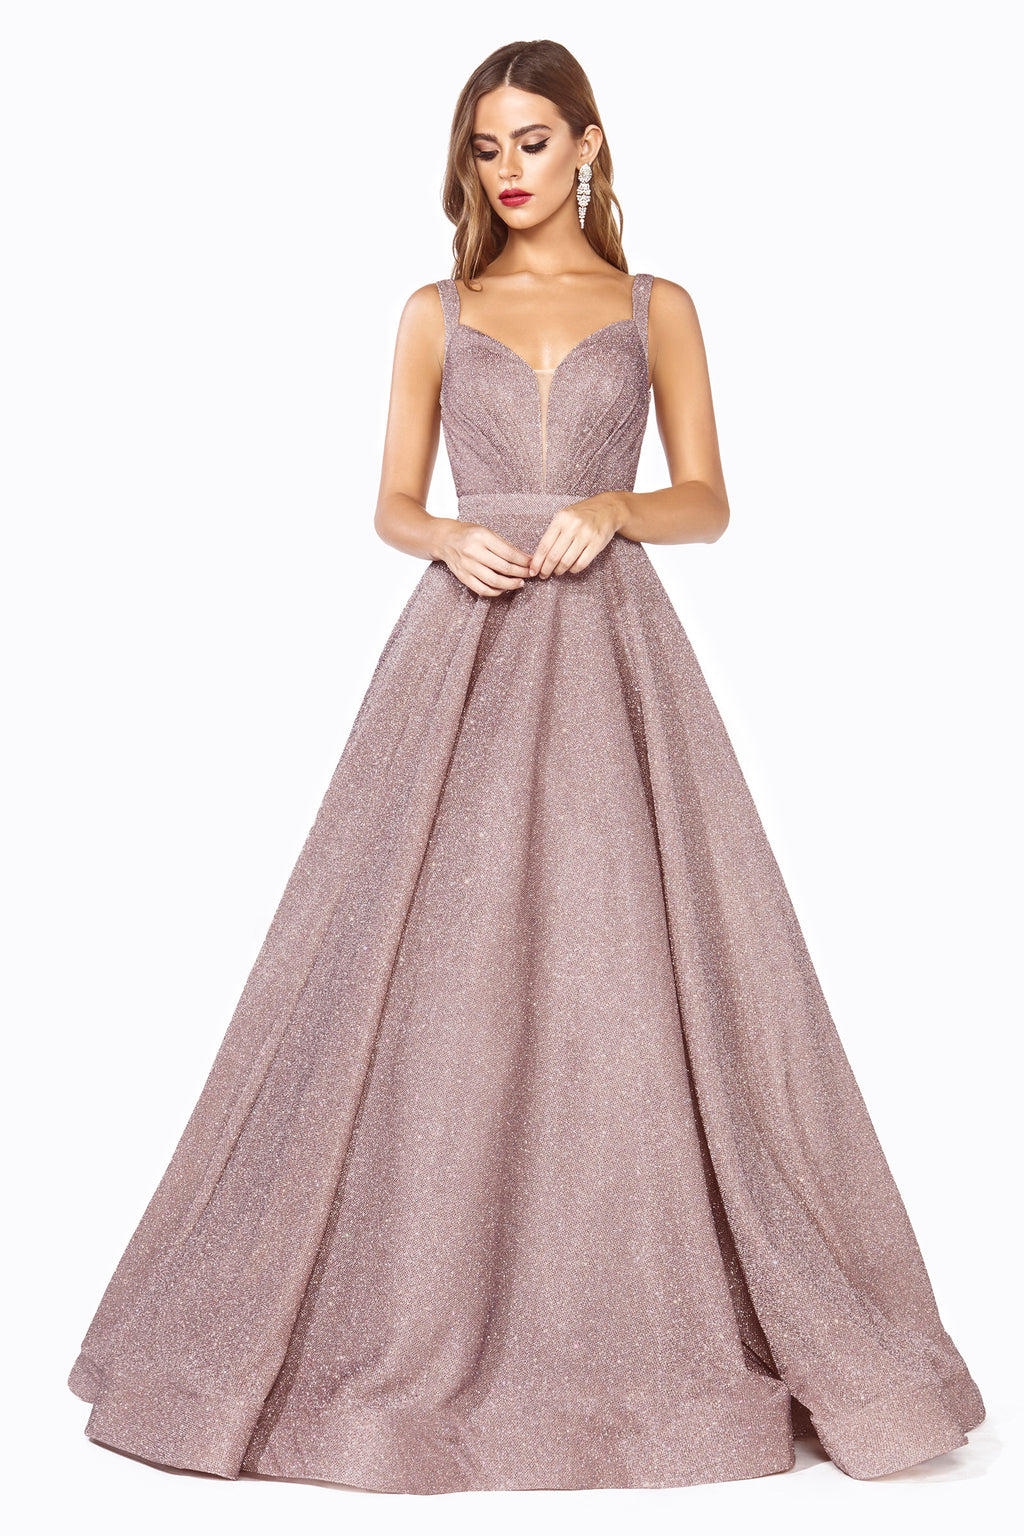 Classic Ball Gown With Shimmering Silver Flakes Style #LAJ792